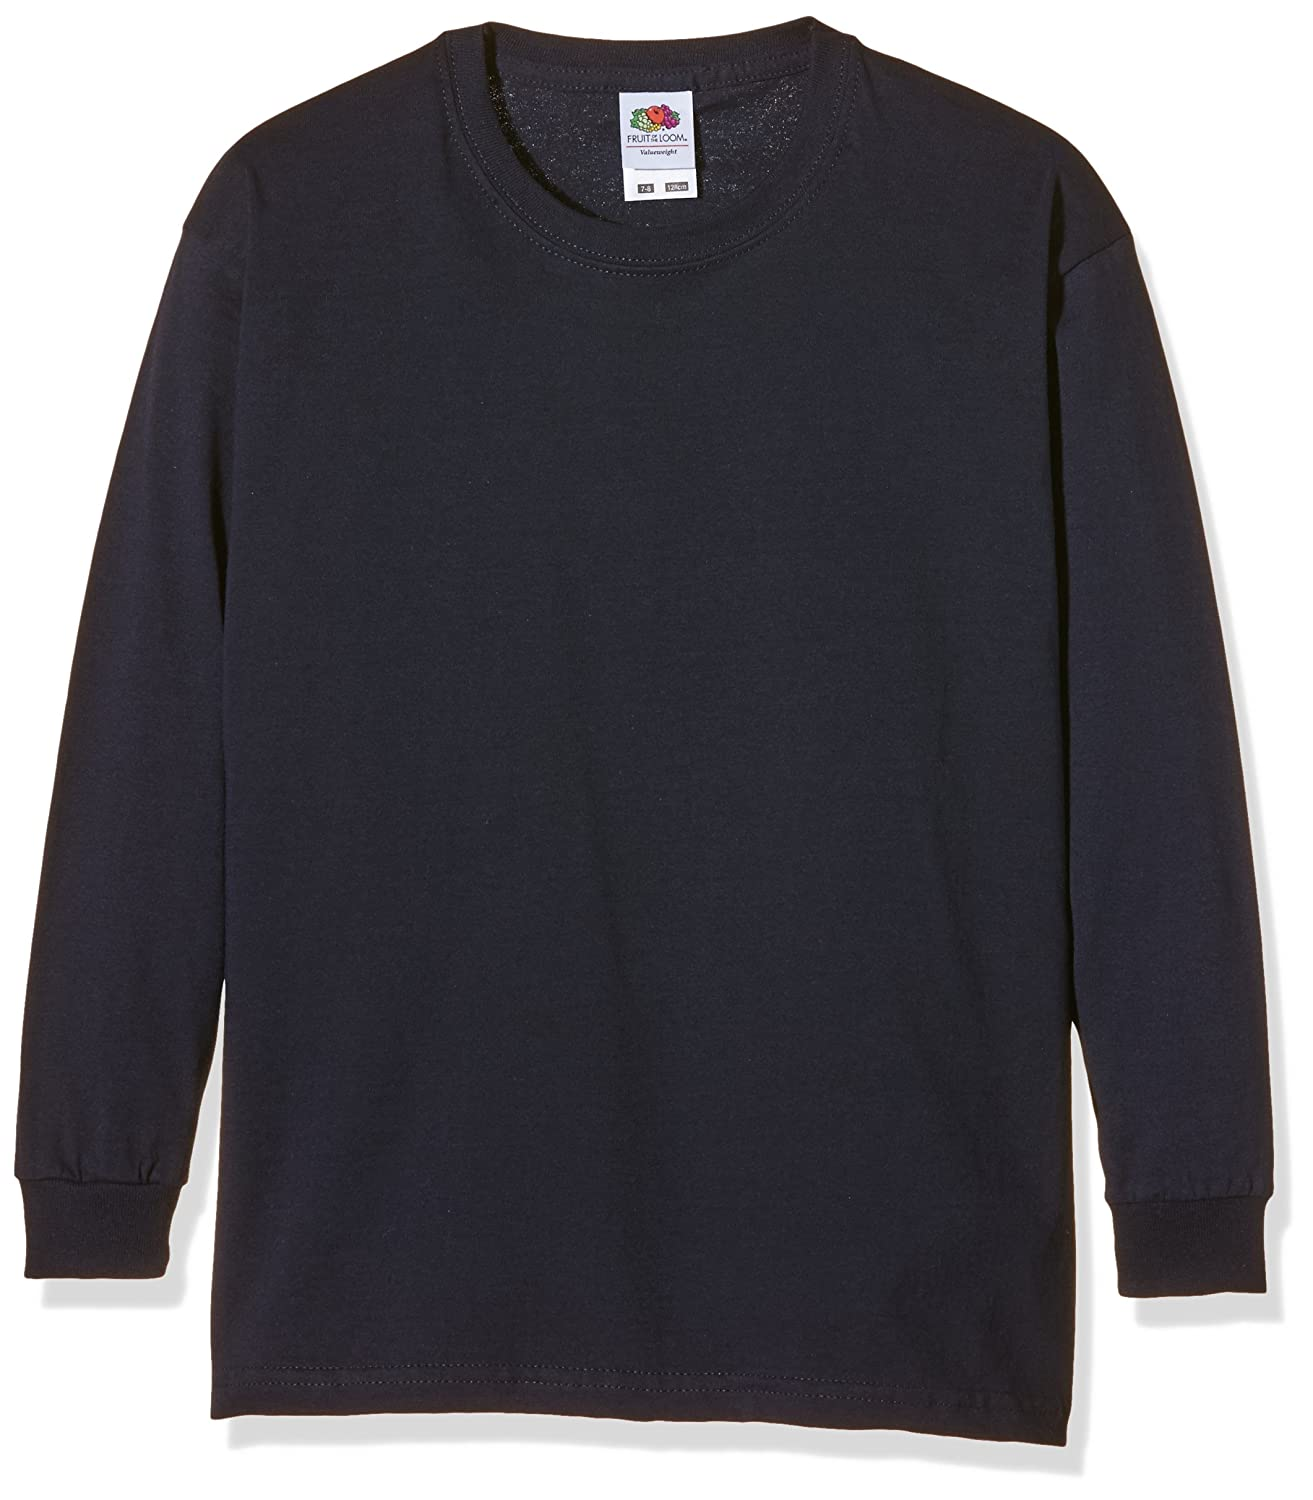 Fruit of the Loom M/ädchen Valueweight Long Sleeve T-Shirt